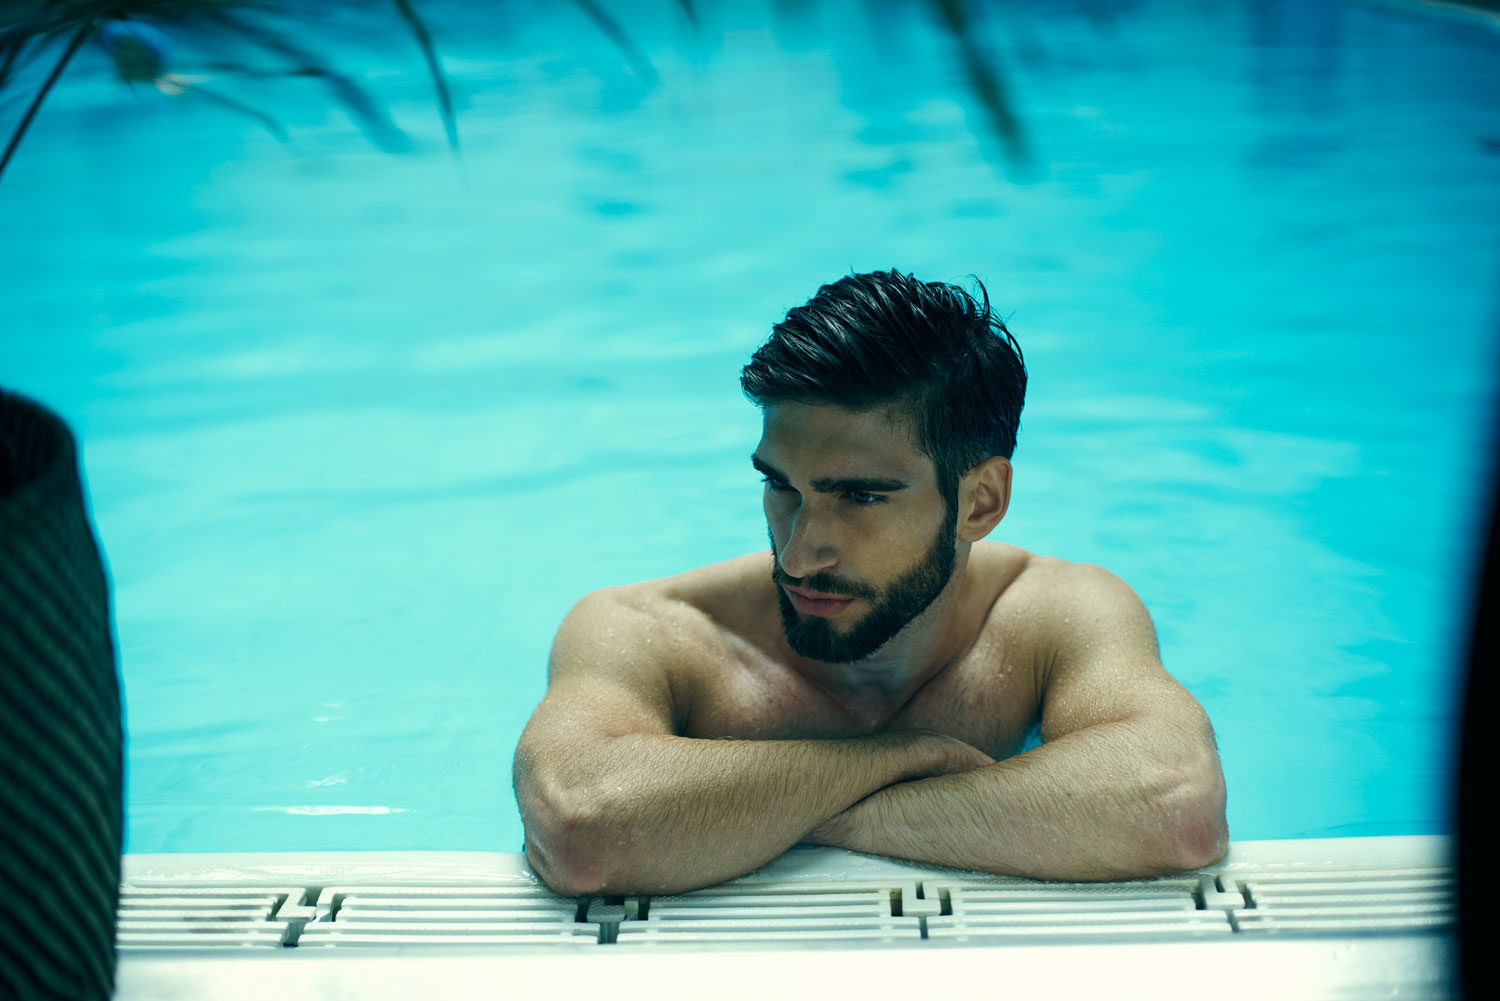 Man chilling by pool. Editorial fashion series for Bogstadveien Magazine in Oslo by Håvard Schei.